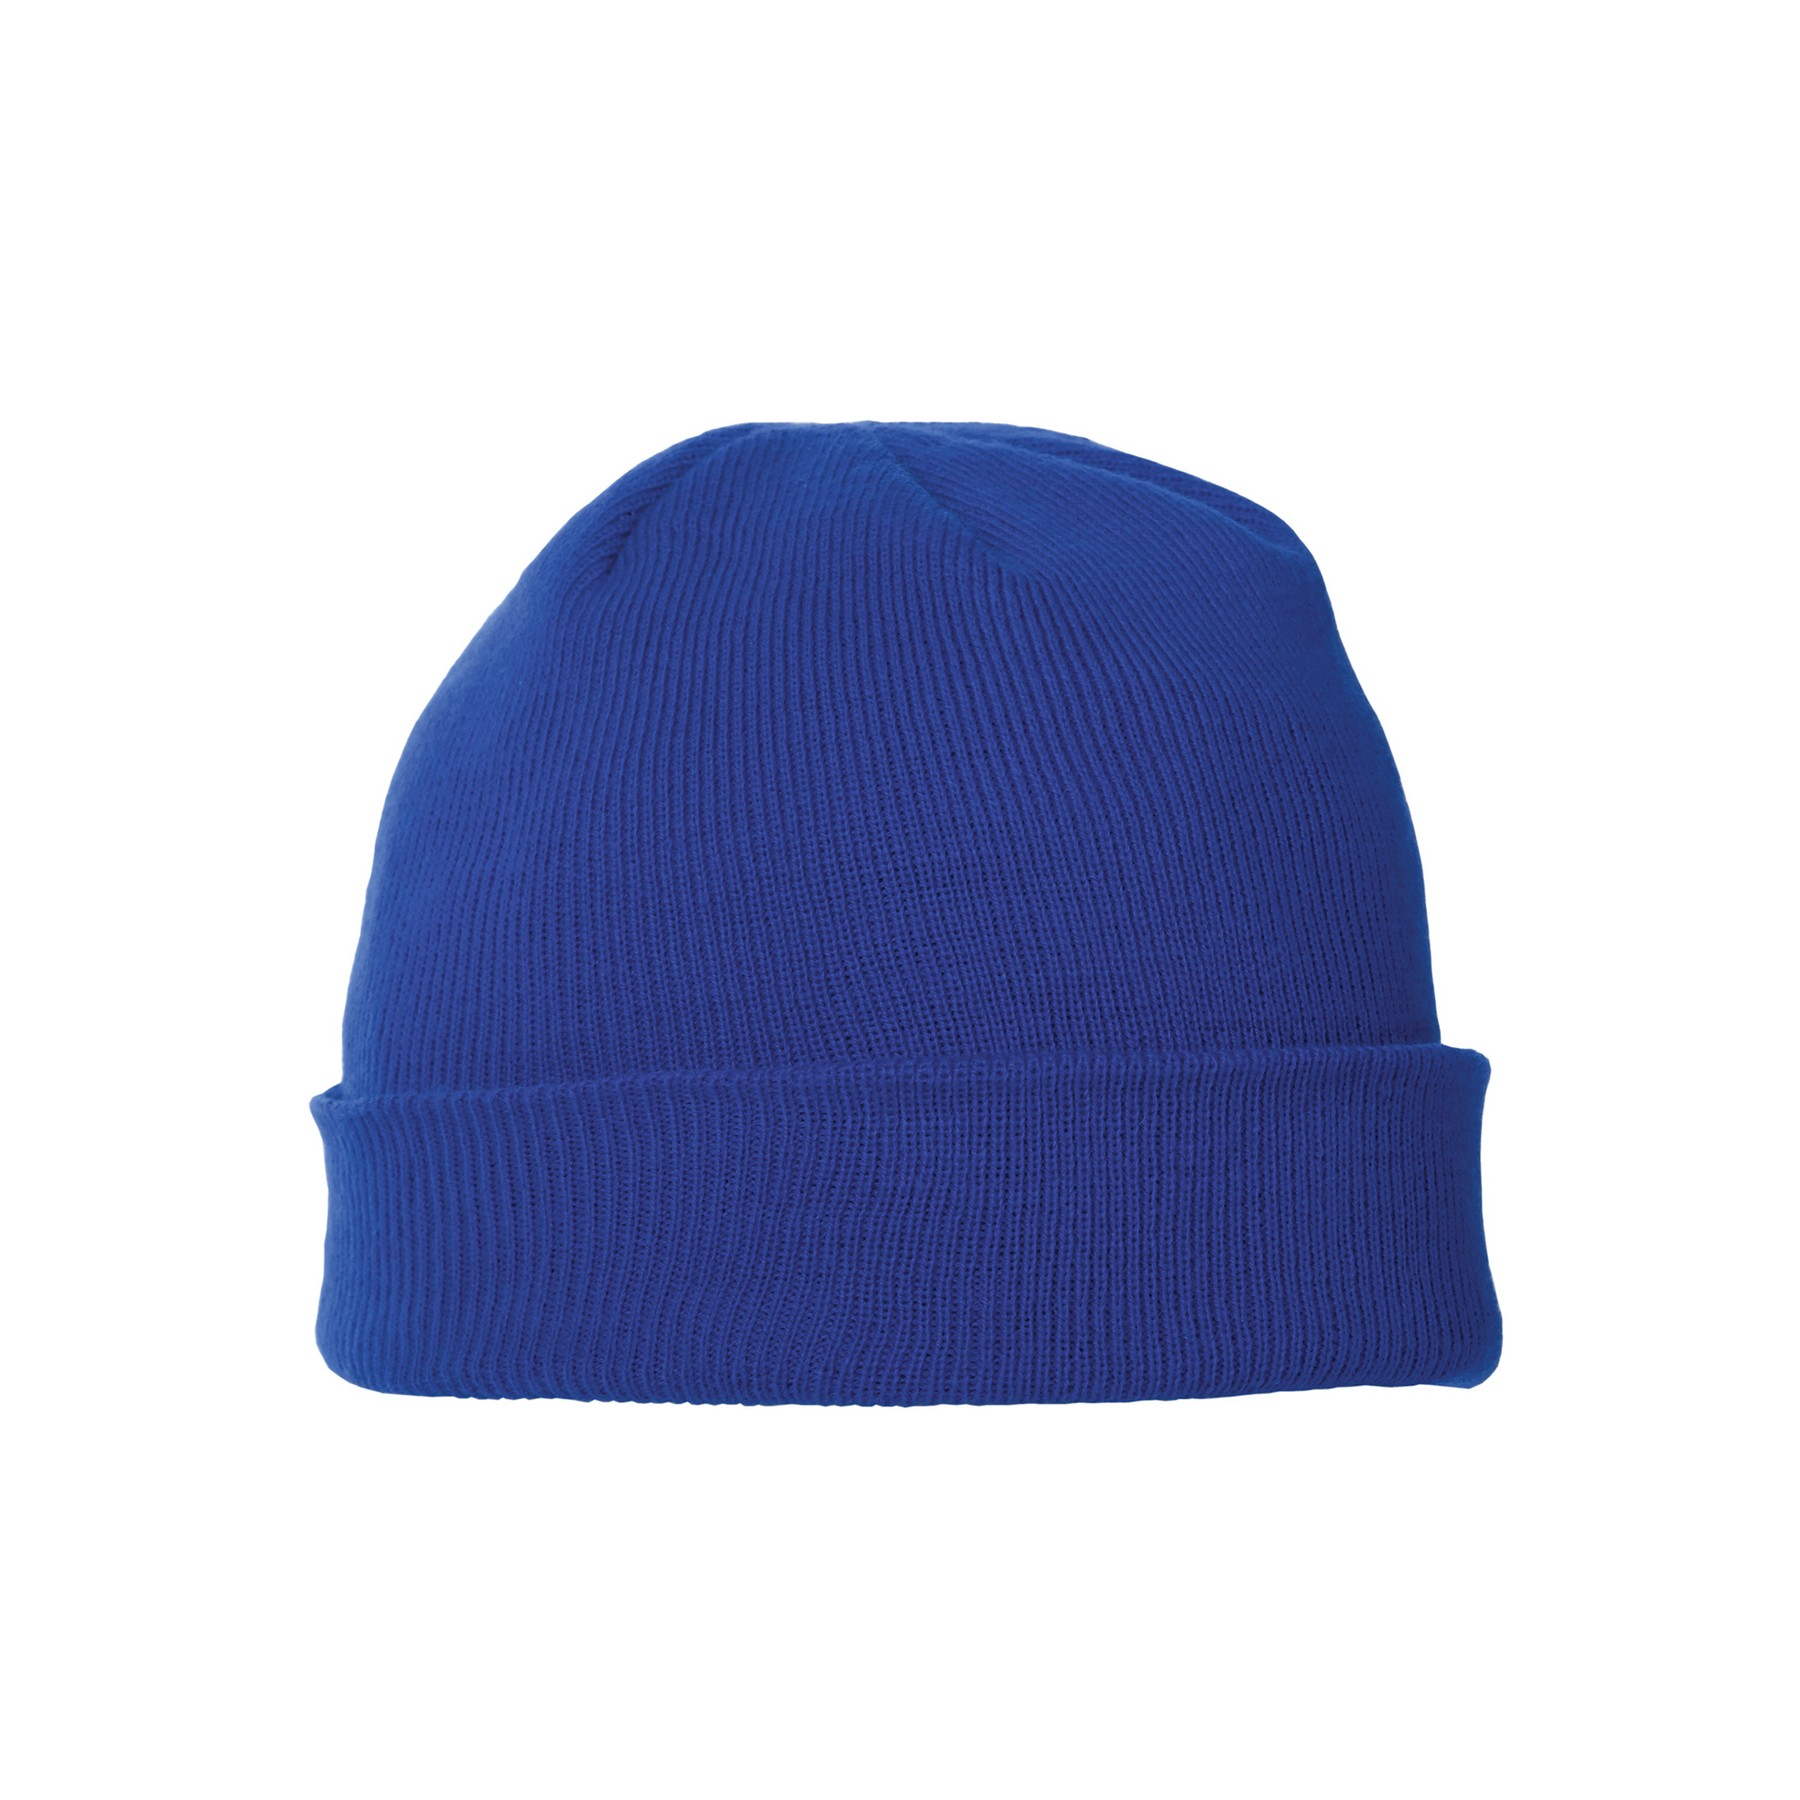 Endure Knit Toque, #36105 - Embroidered